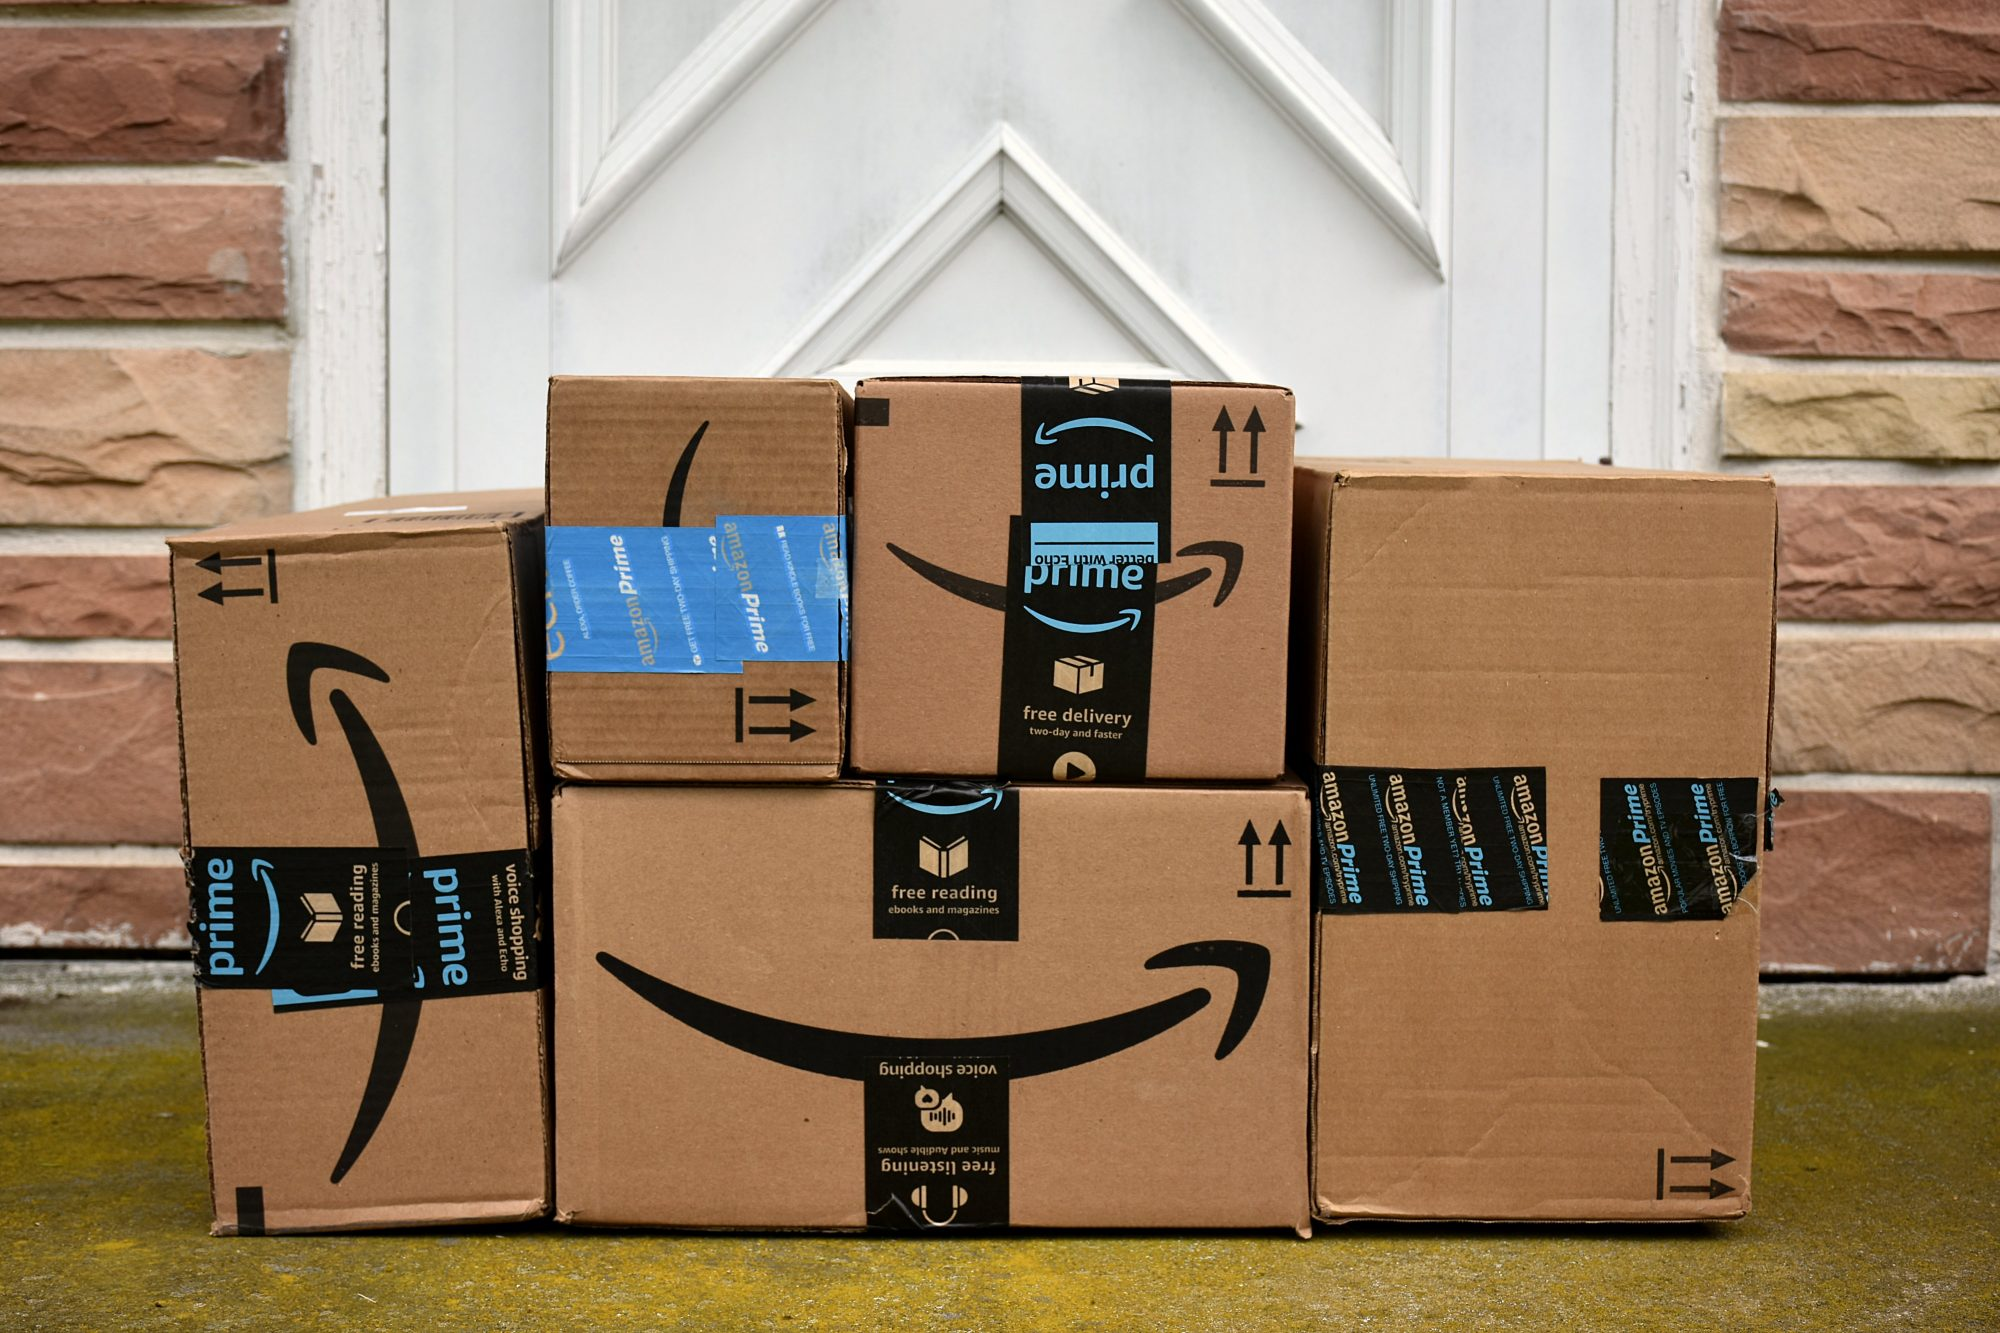 Amazon Prime Day 2018: All the Best Deals So Far